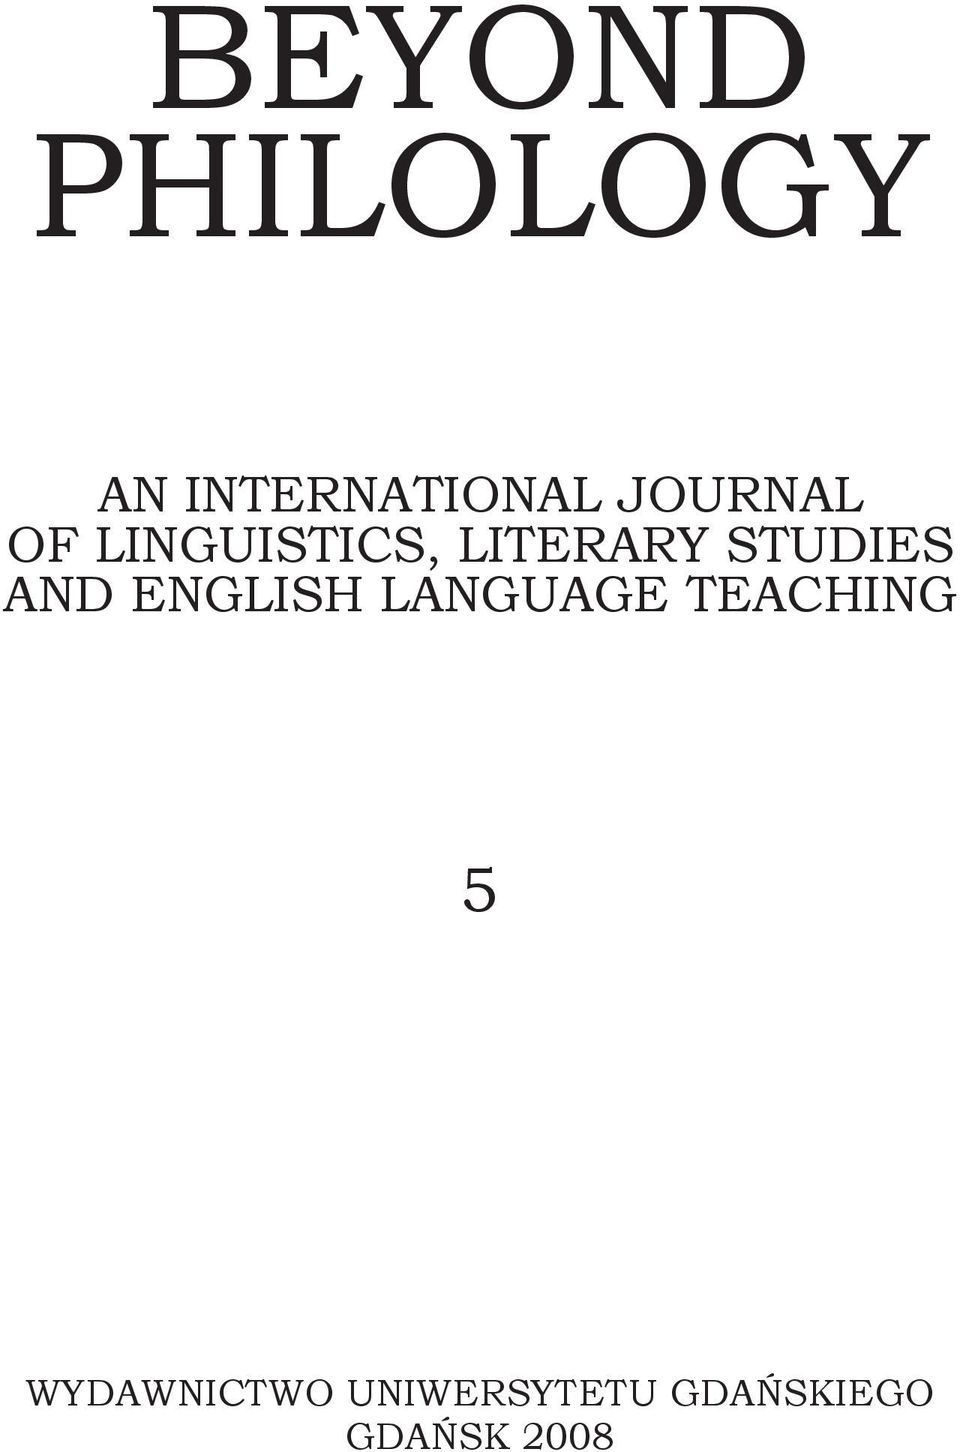 STUDIES AND ENGLISH LANGUAGE TEACHING